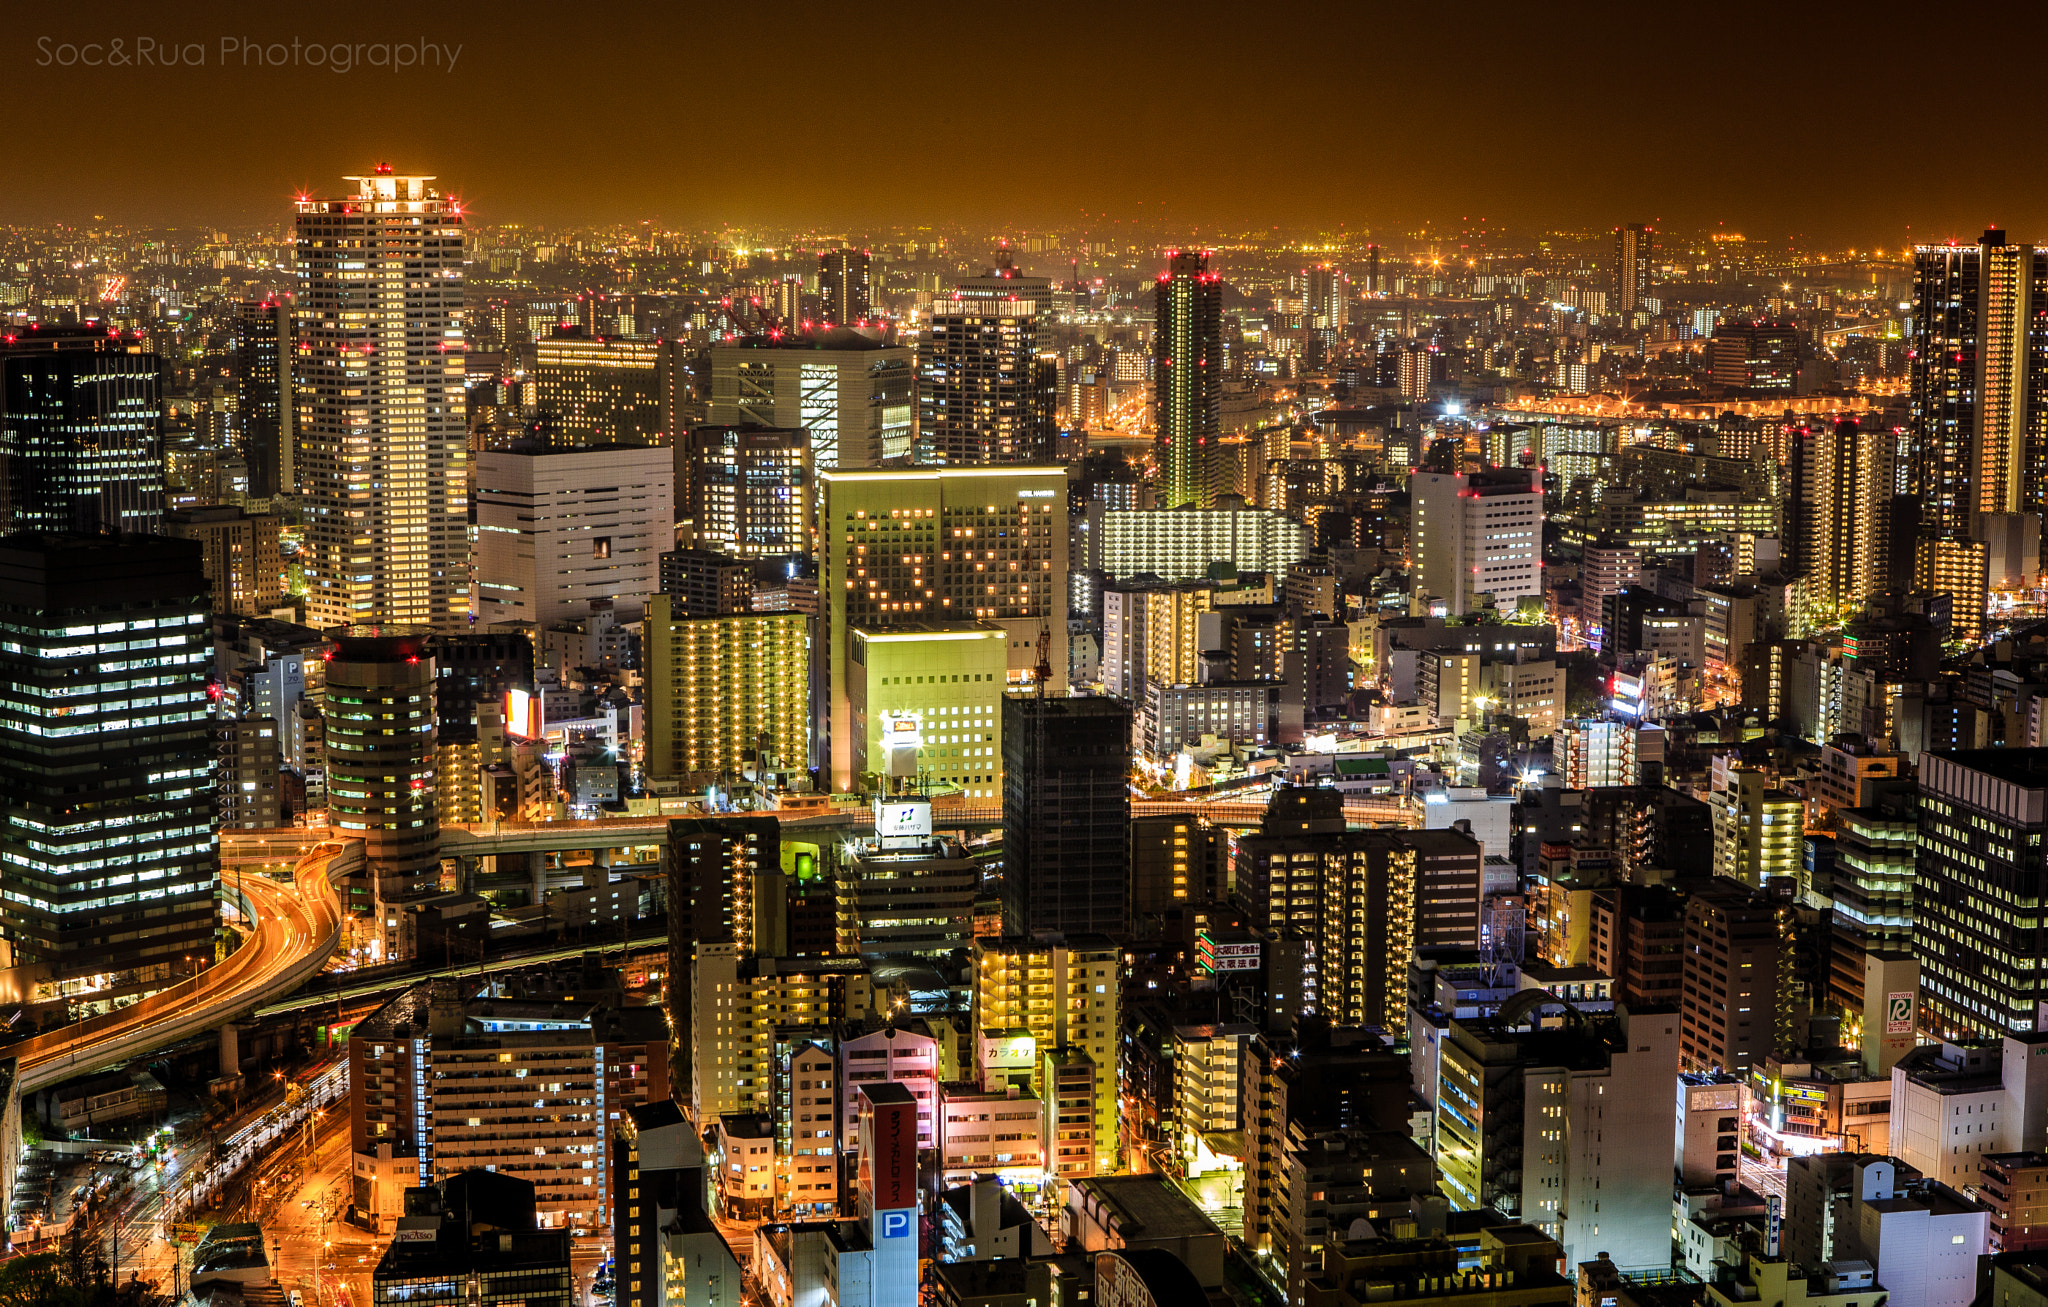 Photograph View from Umeda sky building by Huy Tonthat on 500px